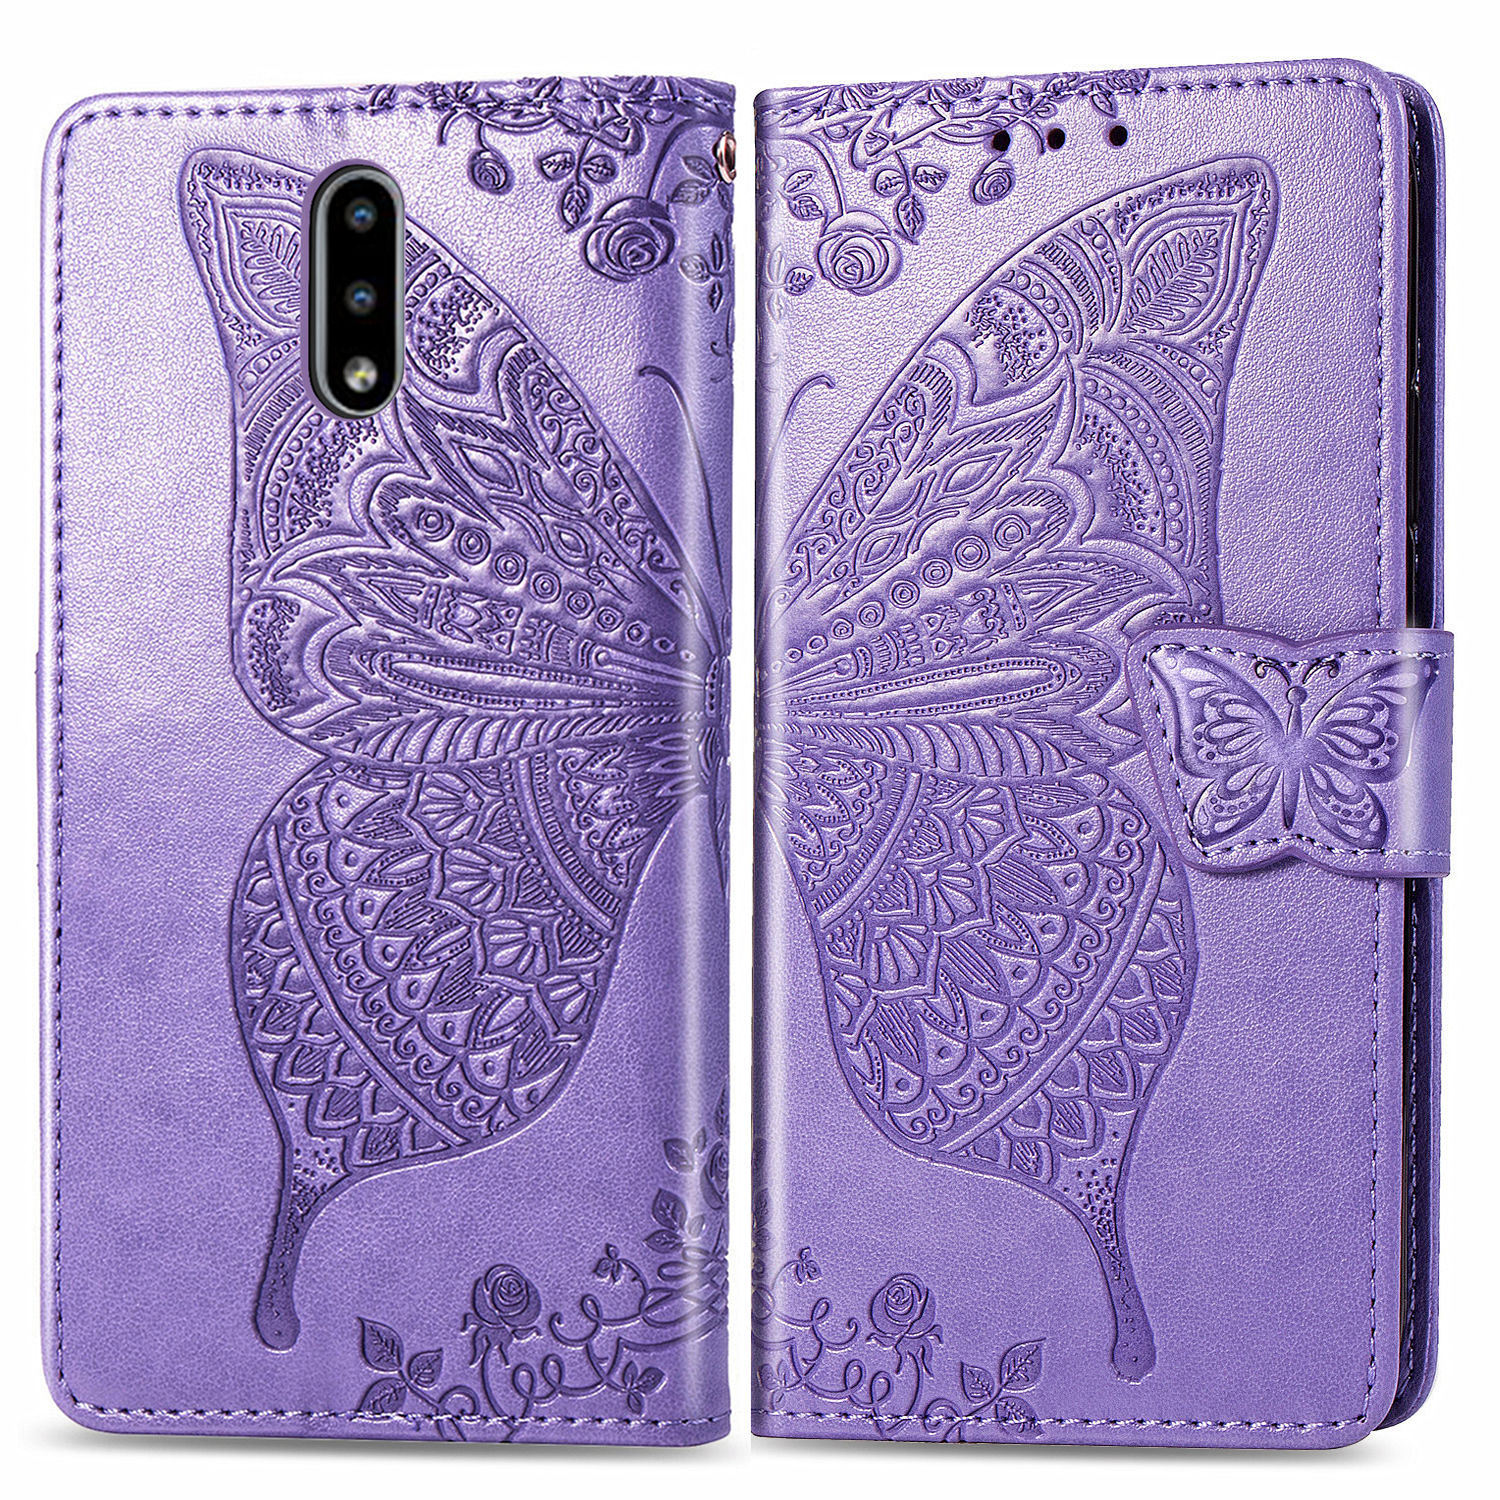 For Coque <font><b>Vivo</b></font> Y11 2019 <font><b>Case</b></font> Luxury Flip PU Leather Card Slots Wallet Stand <font><b>Case</b></font> For Capa <font><b>Vivo</b></font> Y12 Y15 <font><b>Y17</b></font> Y19 2019 Cover <font><b>Case</b></font> image